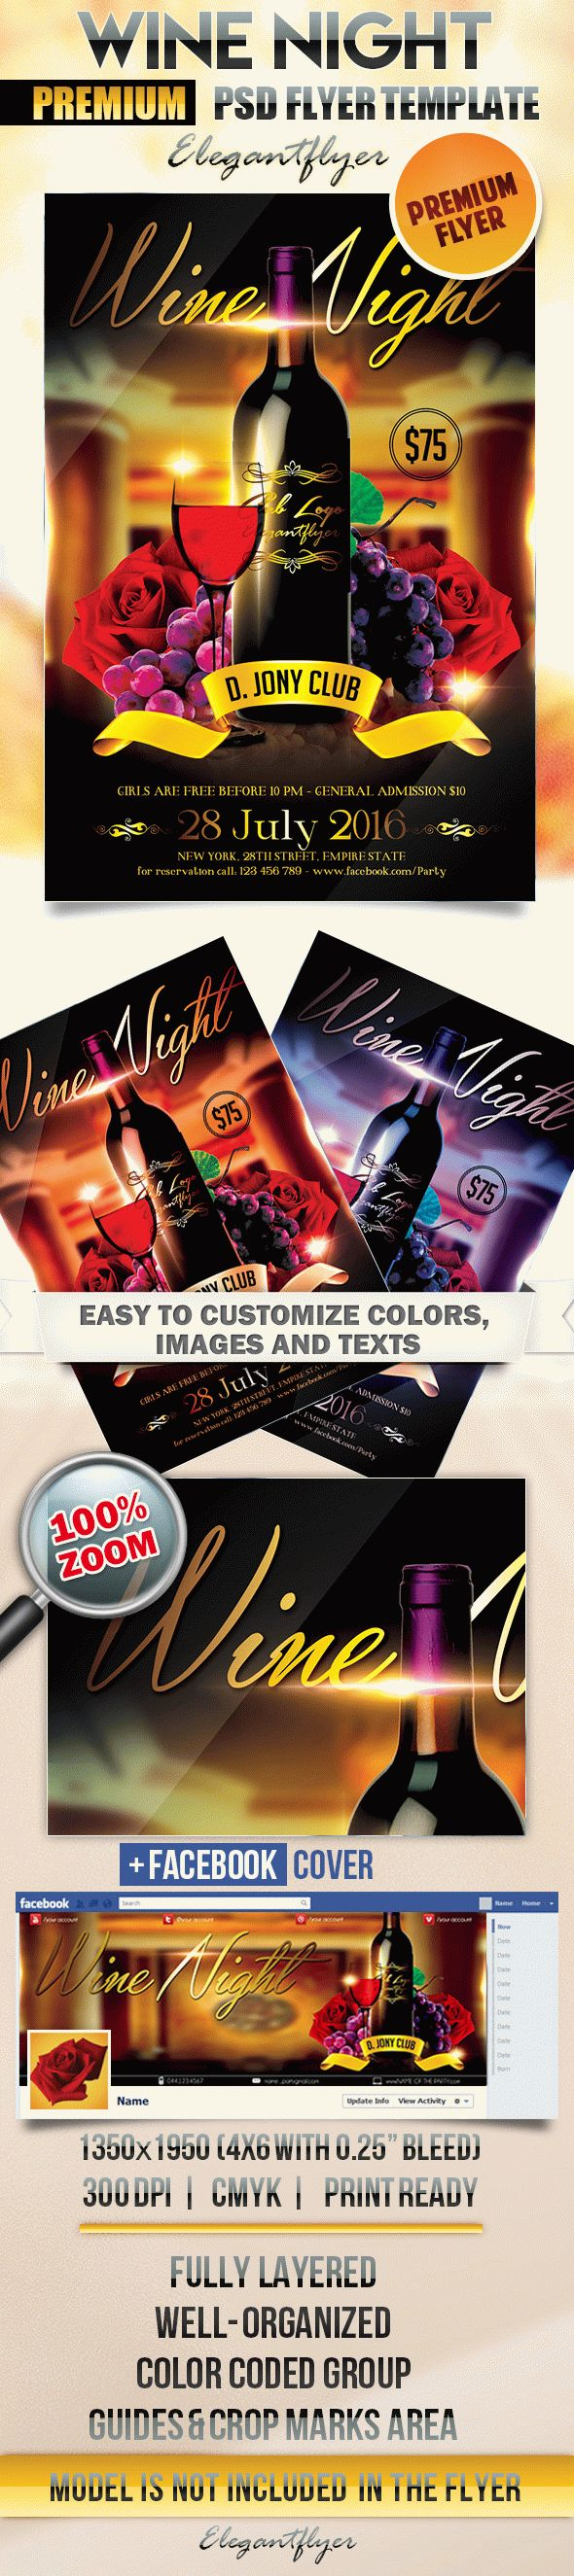 Wine night flyer psd template by elegantflyer wine night flyer psd template maxwellsz